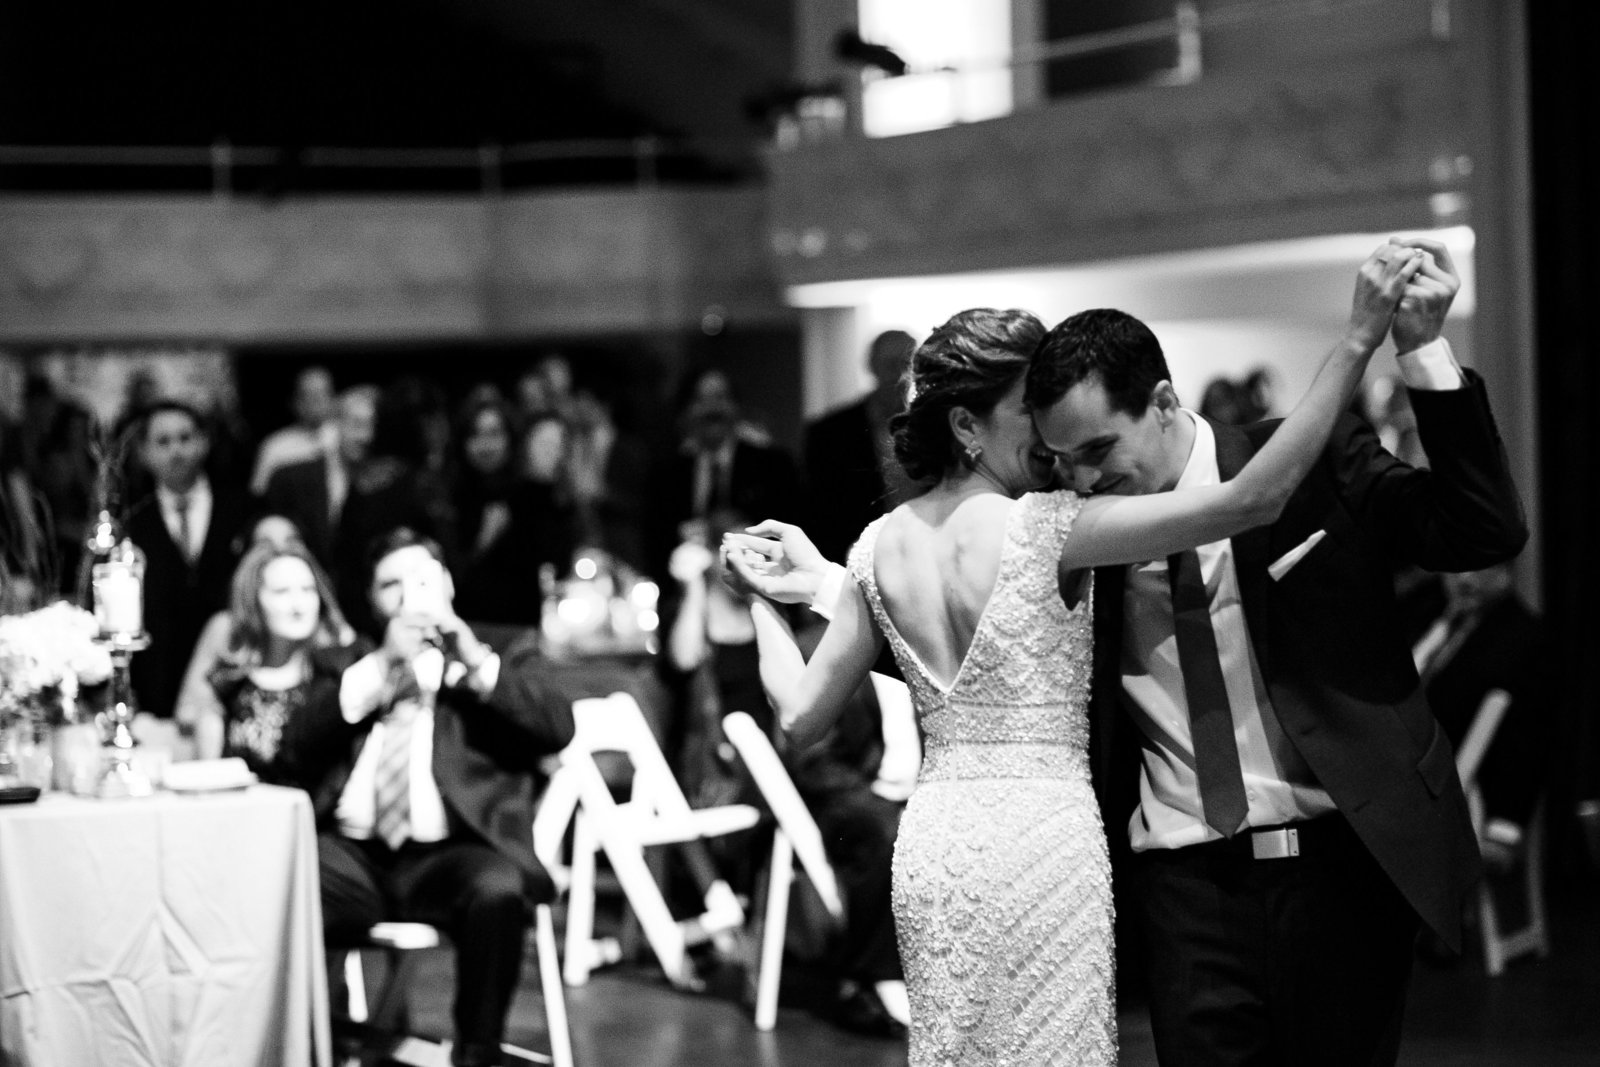 Civic_Theatre_Wedding_0815